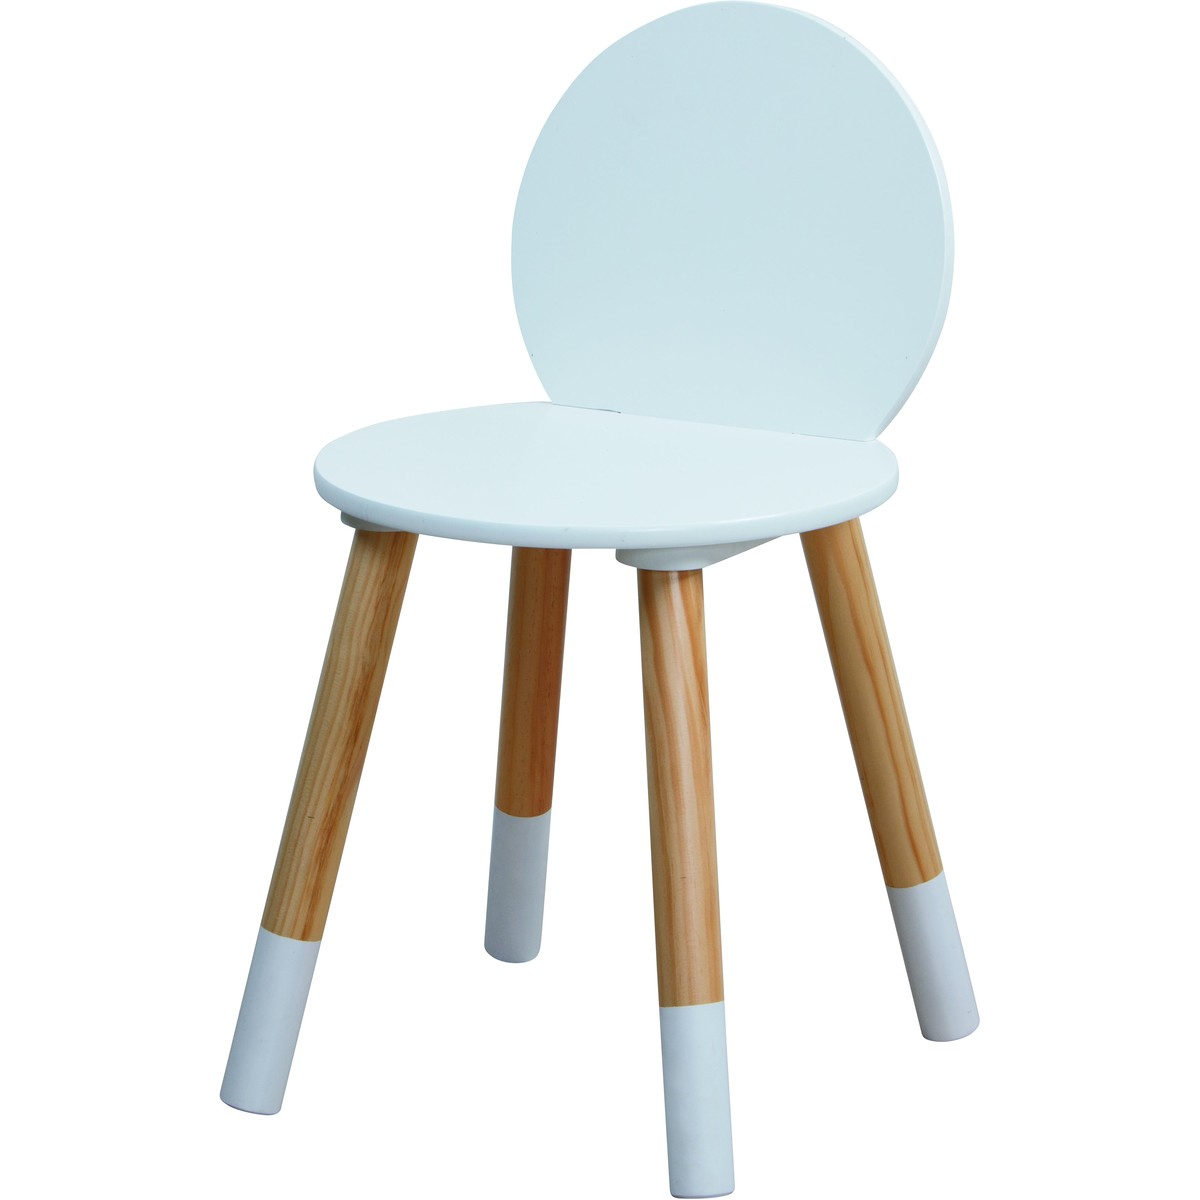 Big W Kids Chair Kodu Kids Chair White